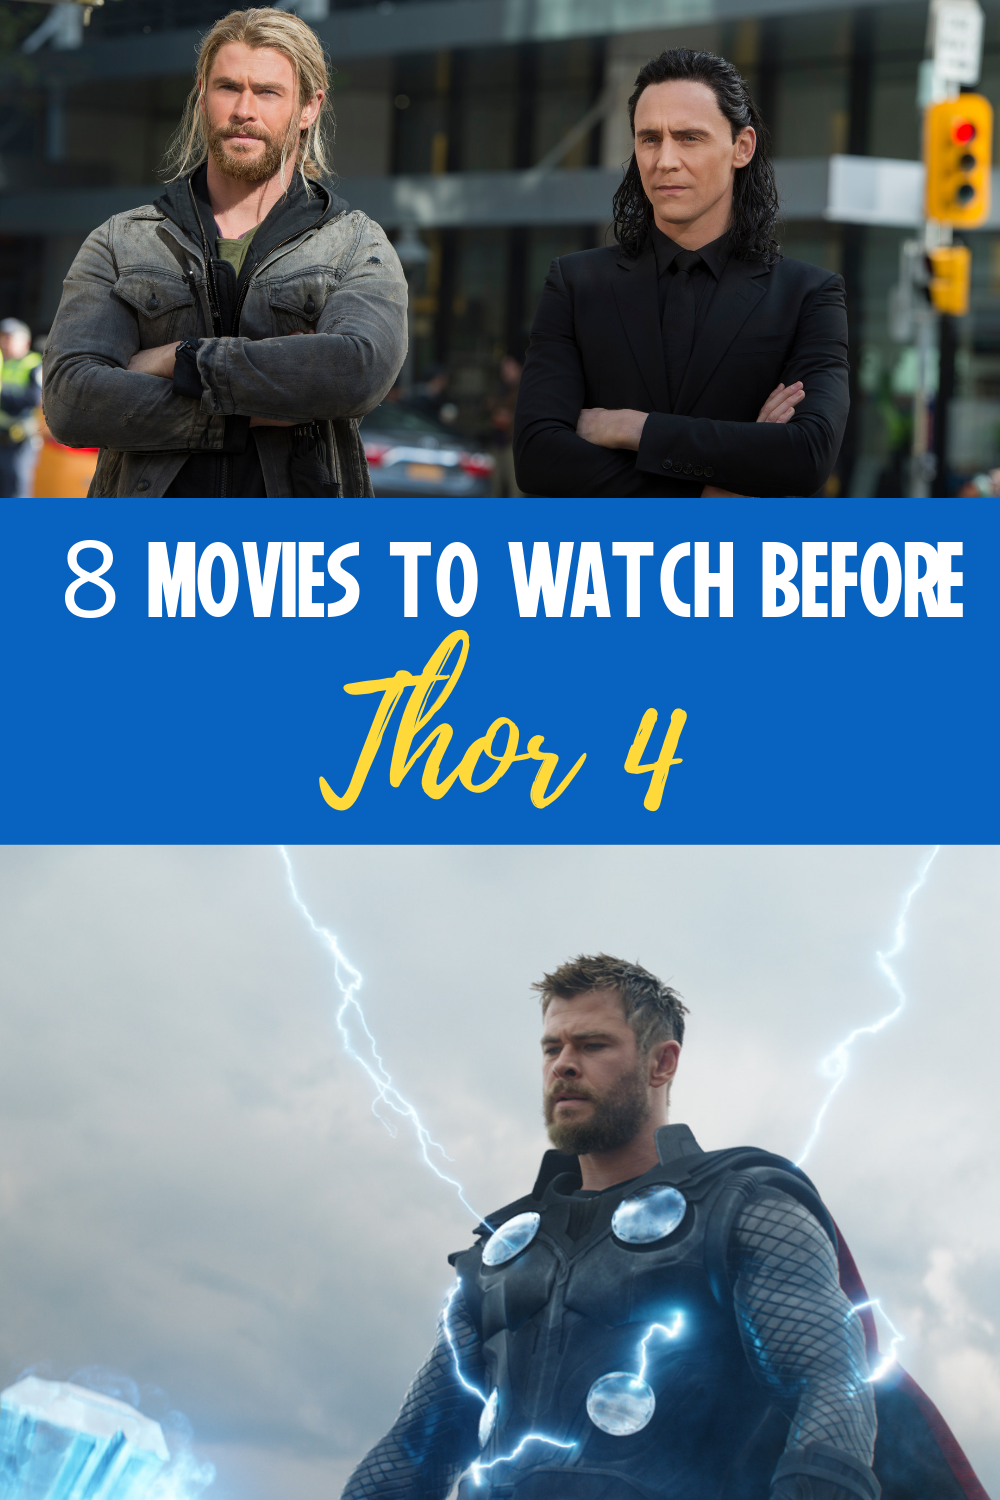 Marvel Movies to Watch Before Thor 4 #marvelmoviesinorder Get your Marvel movie marathon list here for all things Thor! And here it is- All the Marvel movies in order to watch before Thor 4 comes to the MCU.  #thor #marvelmovies #mcu #marvelmoviesinorder